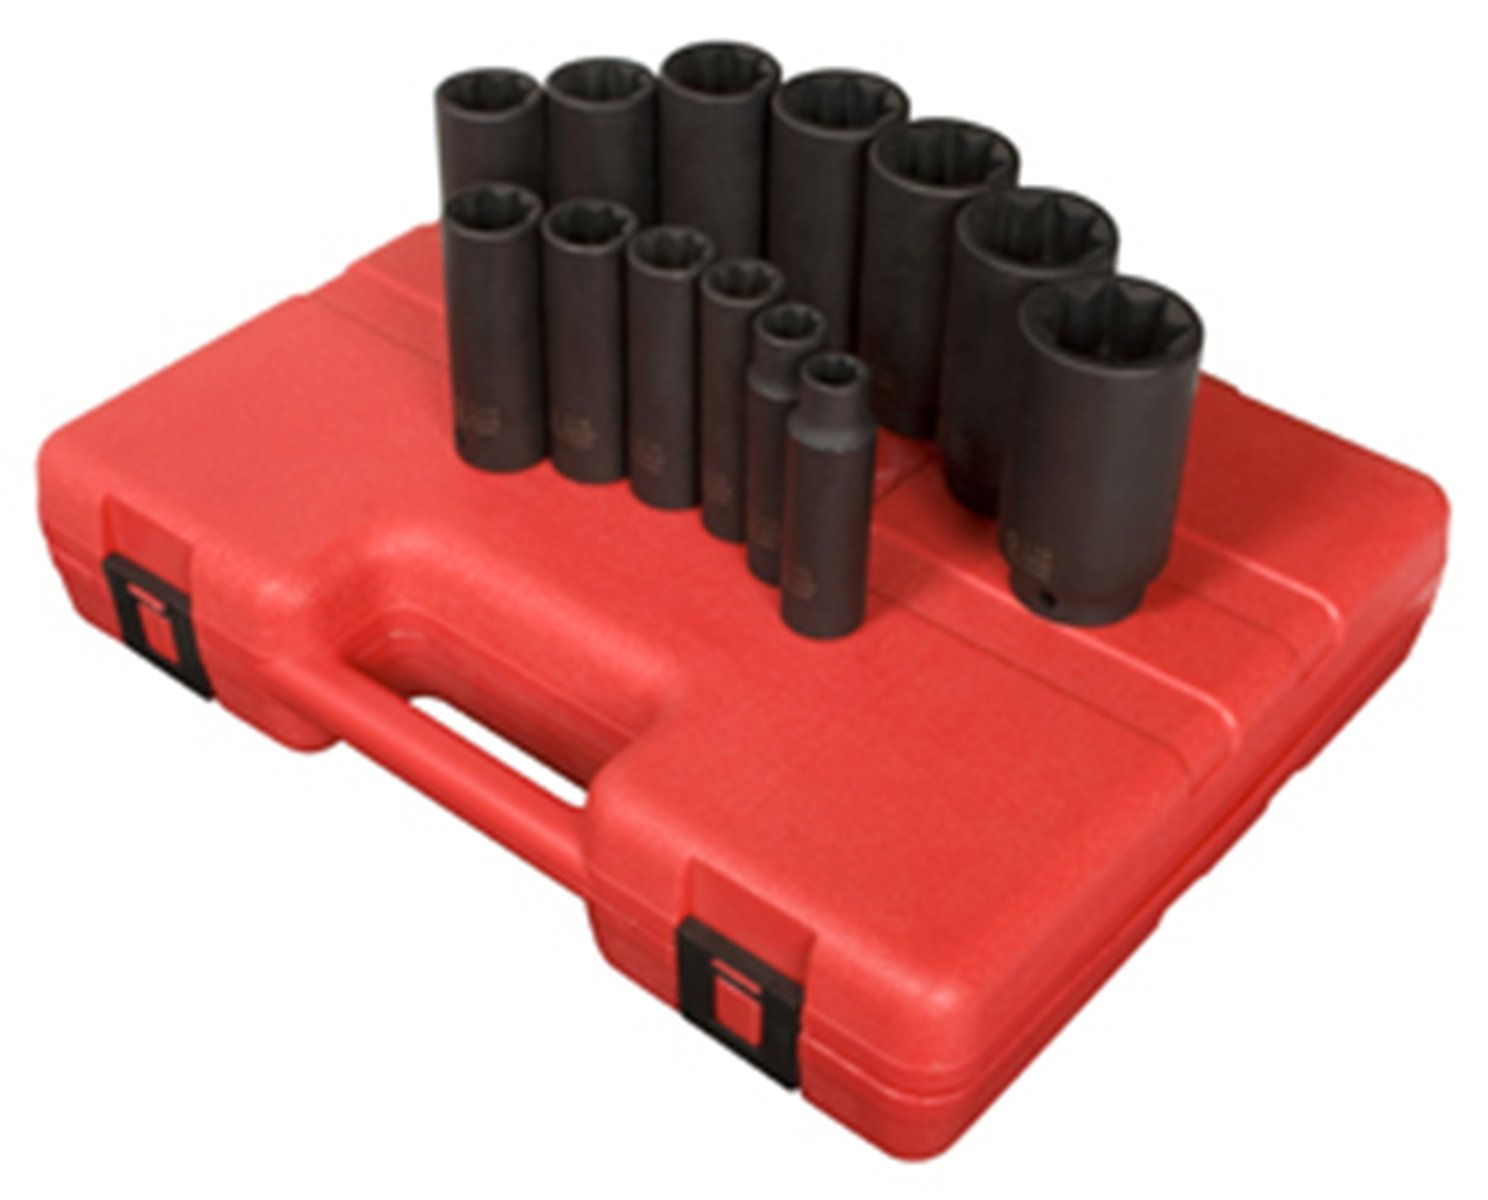 Sunex 2858 1/2-Inch Drive Deep 8-Point SAE Impact Socket Set, 13-Piece by Sunex (Image #1)